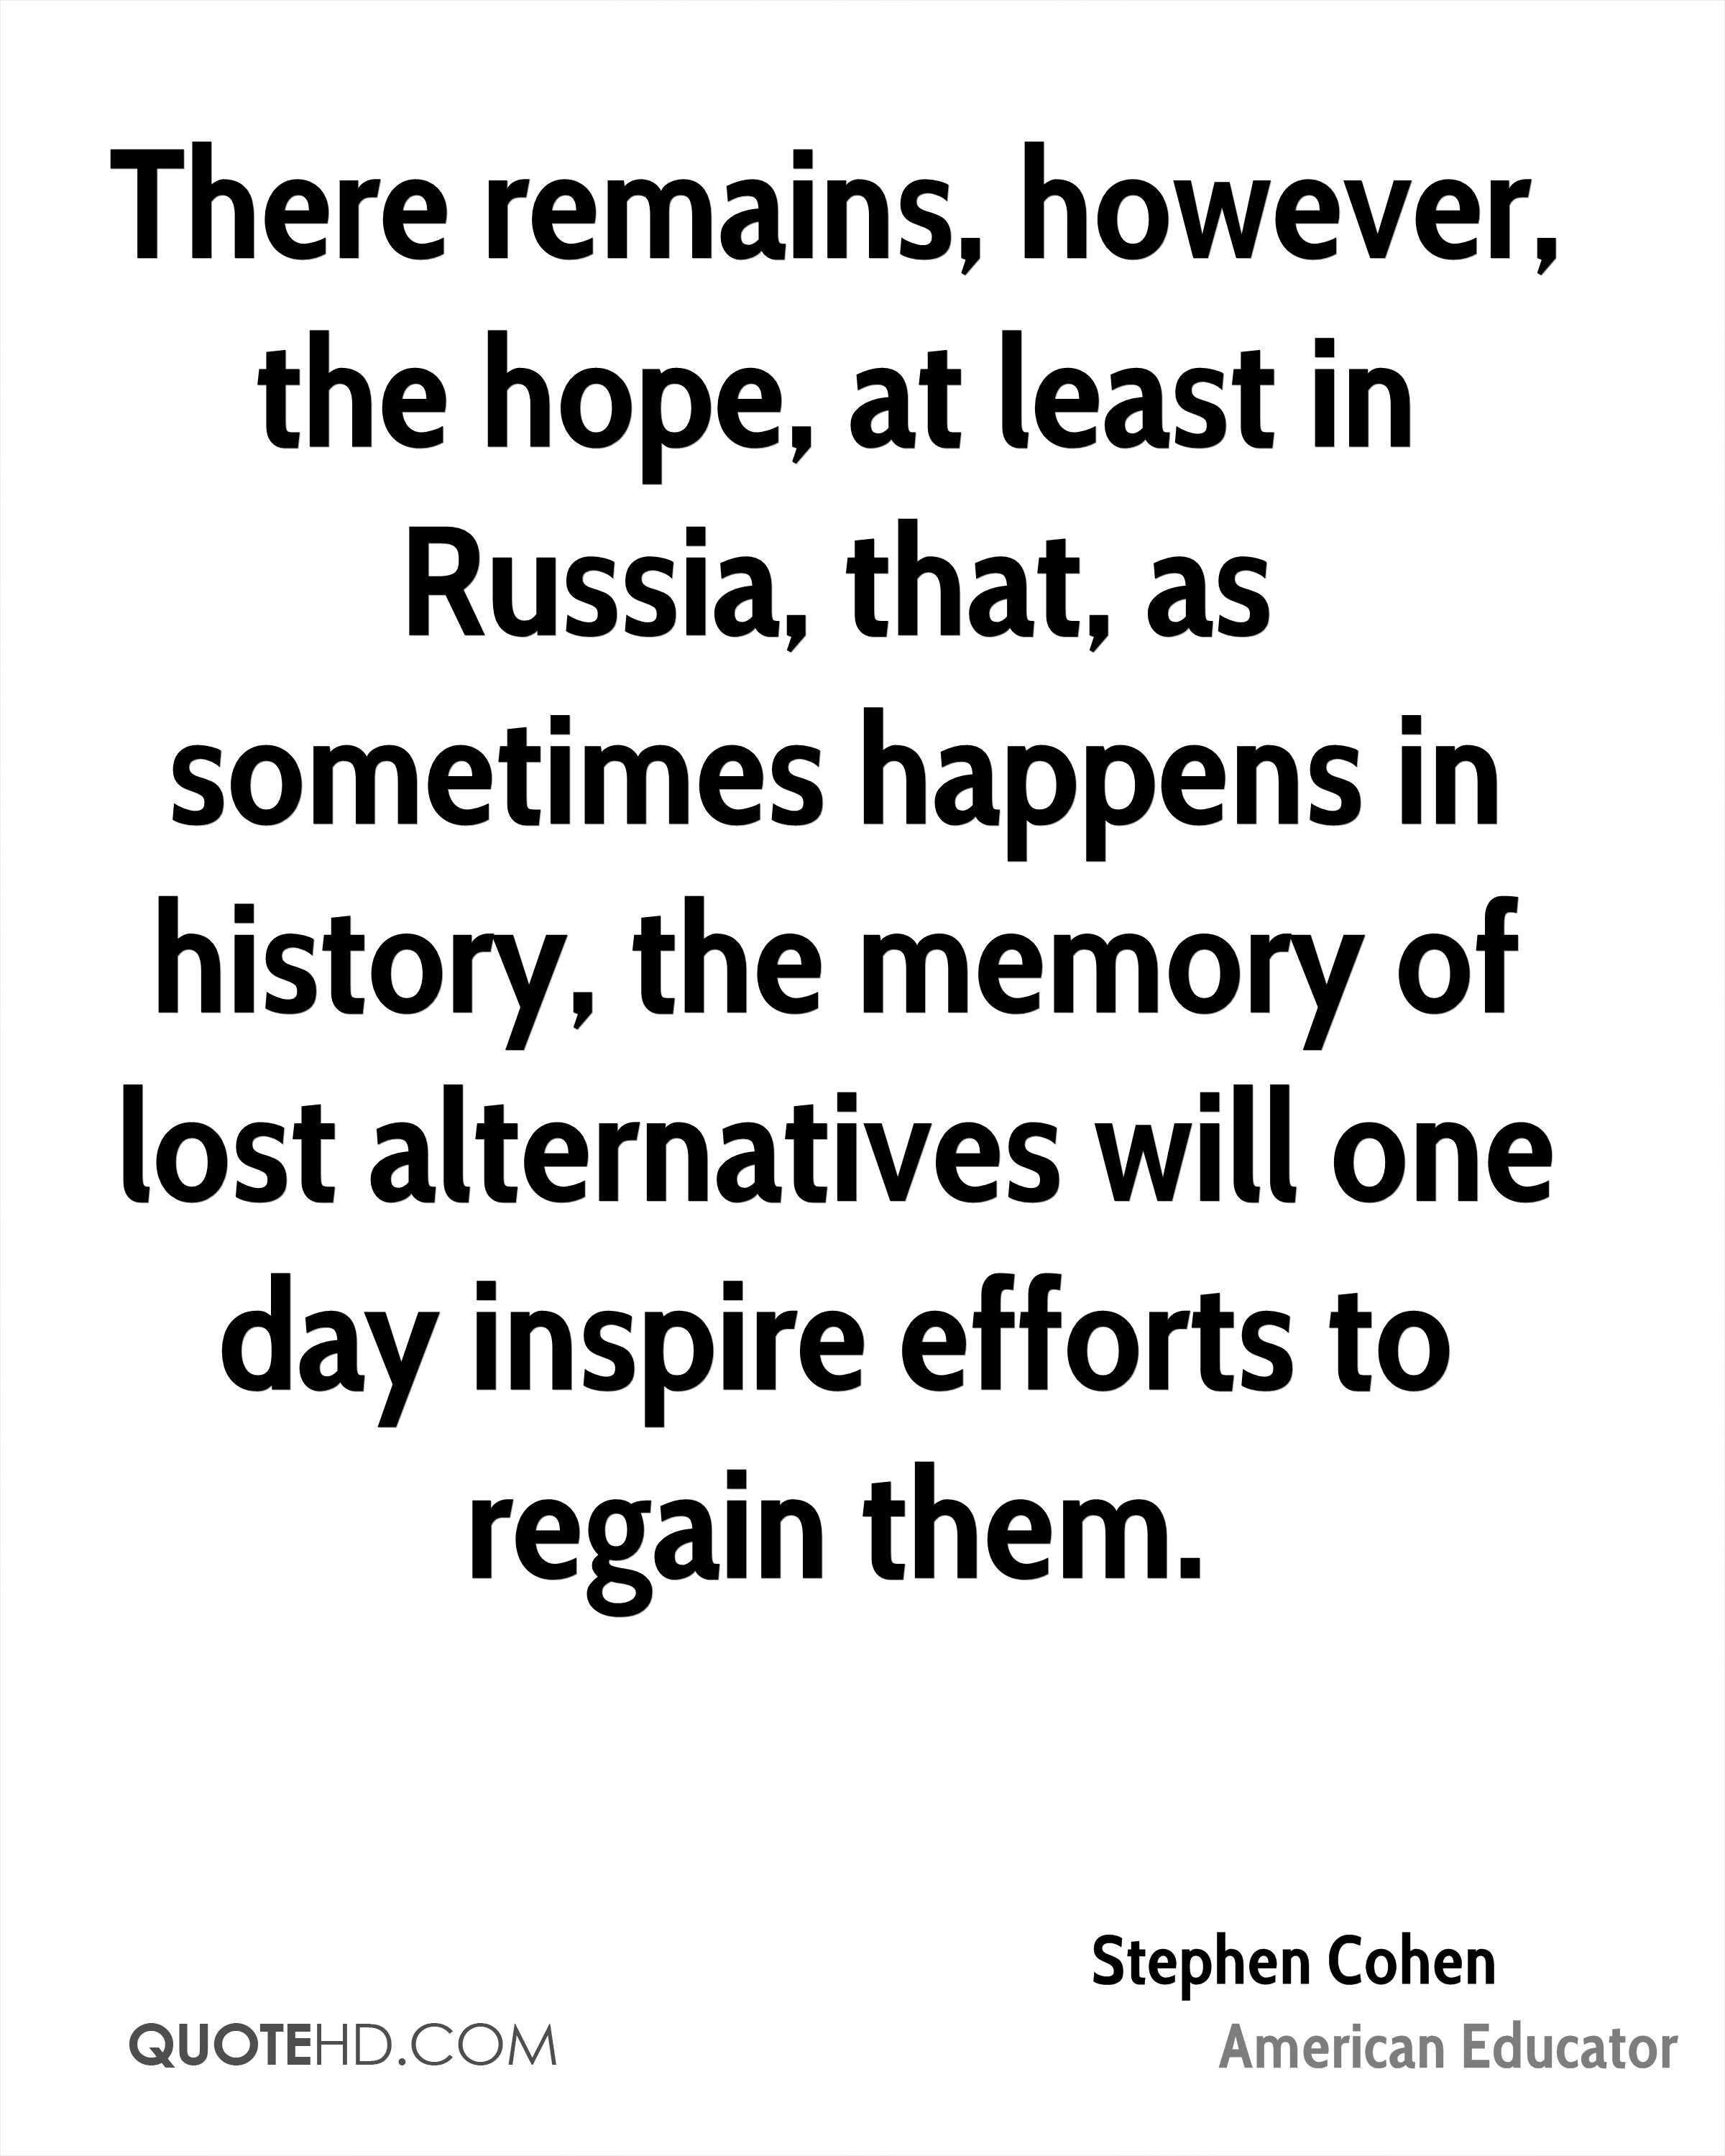 There remains, however, the hope, at least in Russia, that, as sometimes happens in history, the memory of lost alternatives will one day inspire efforts to regain them.